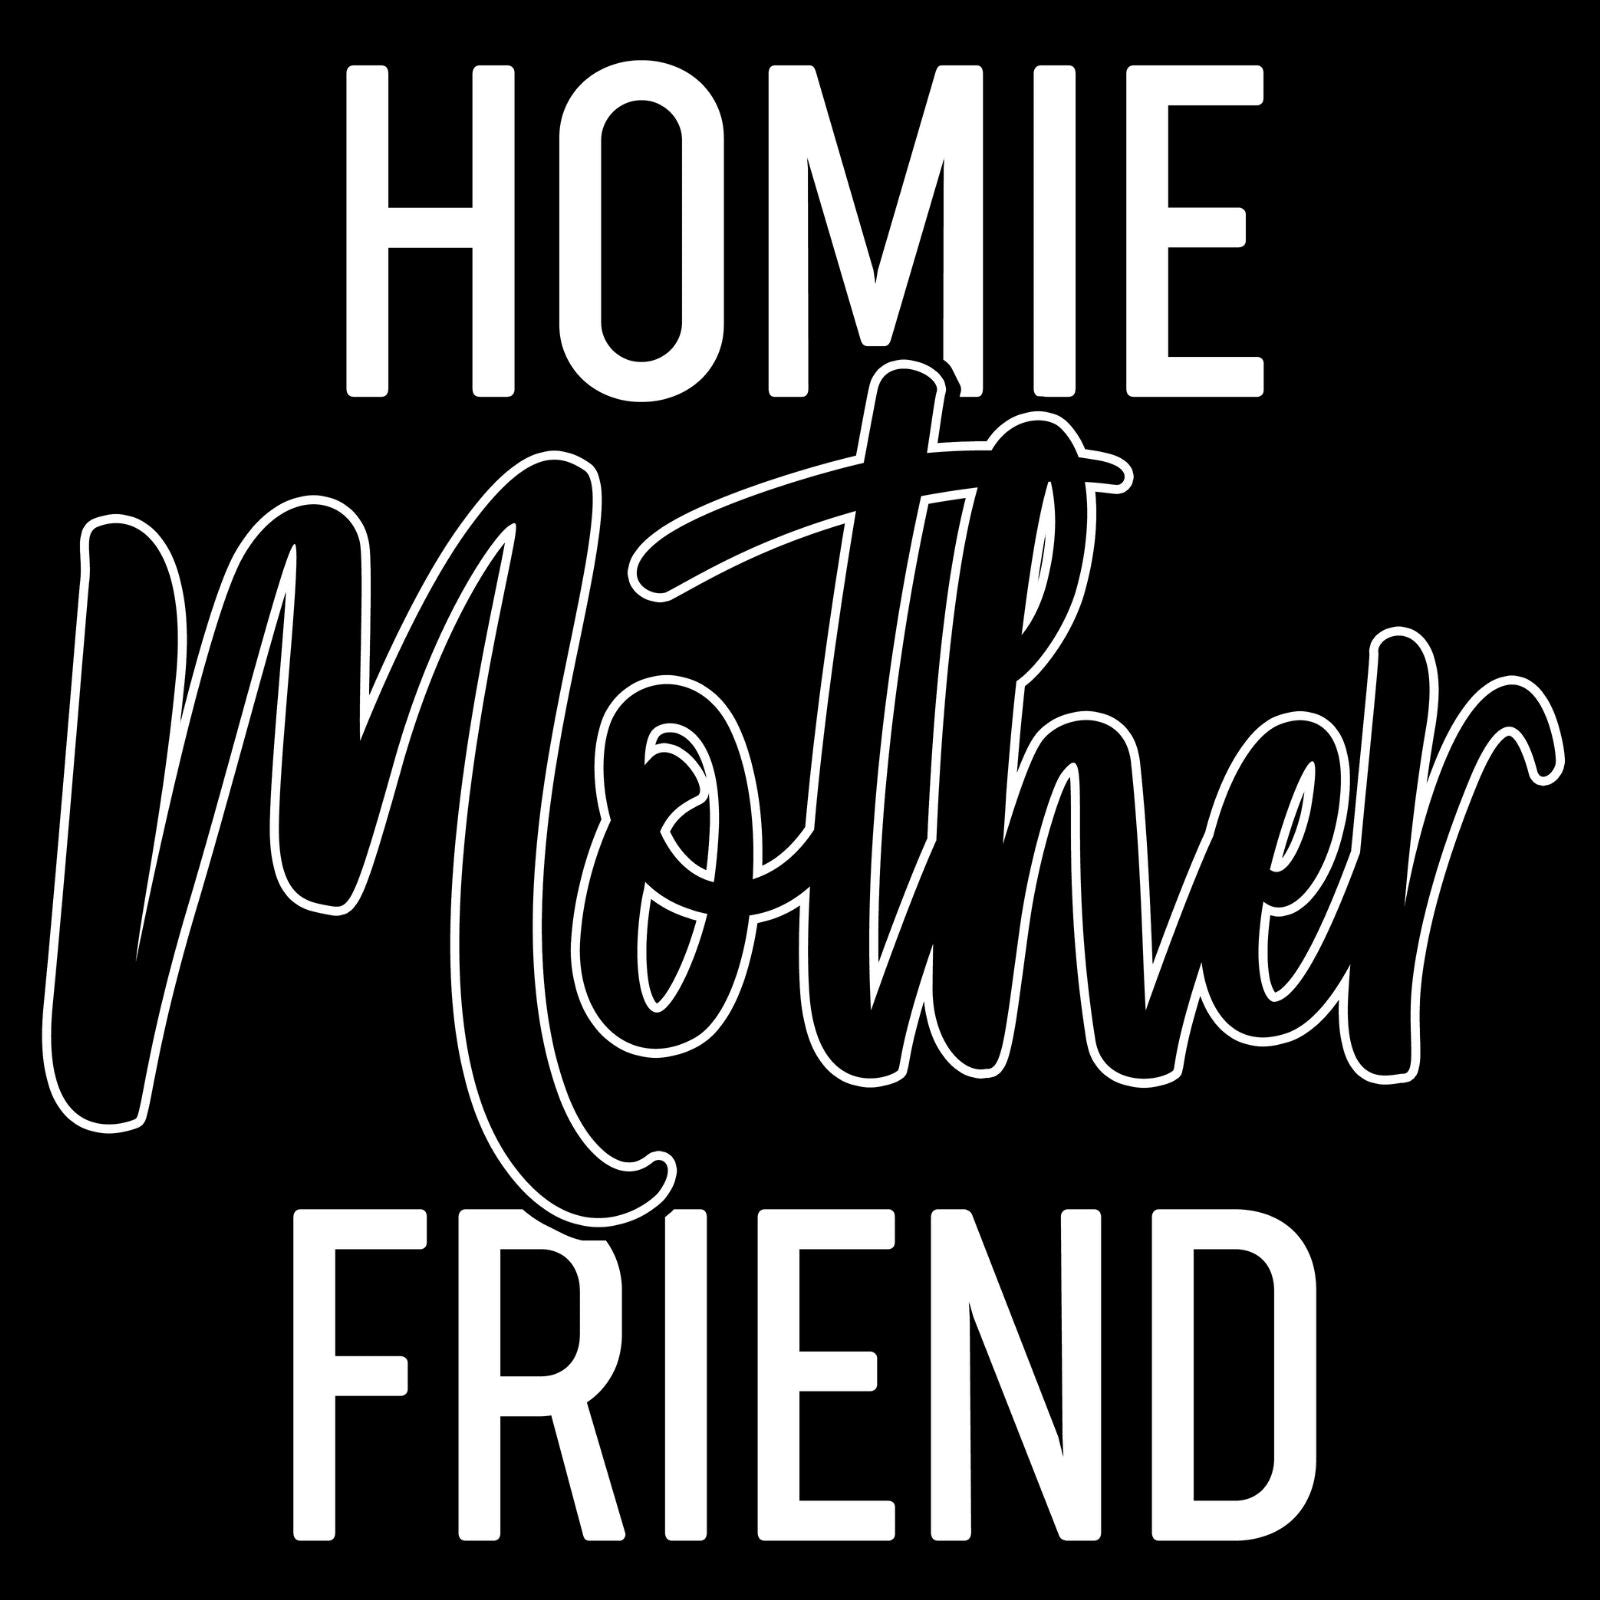 Homie Mother Friend - Bastard Graphics